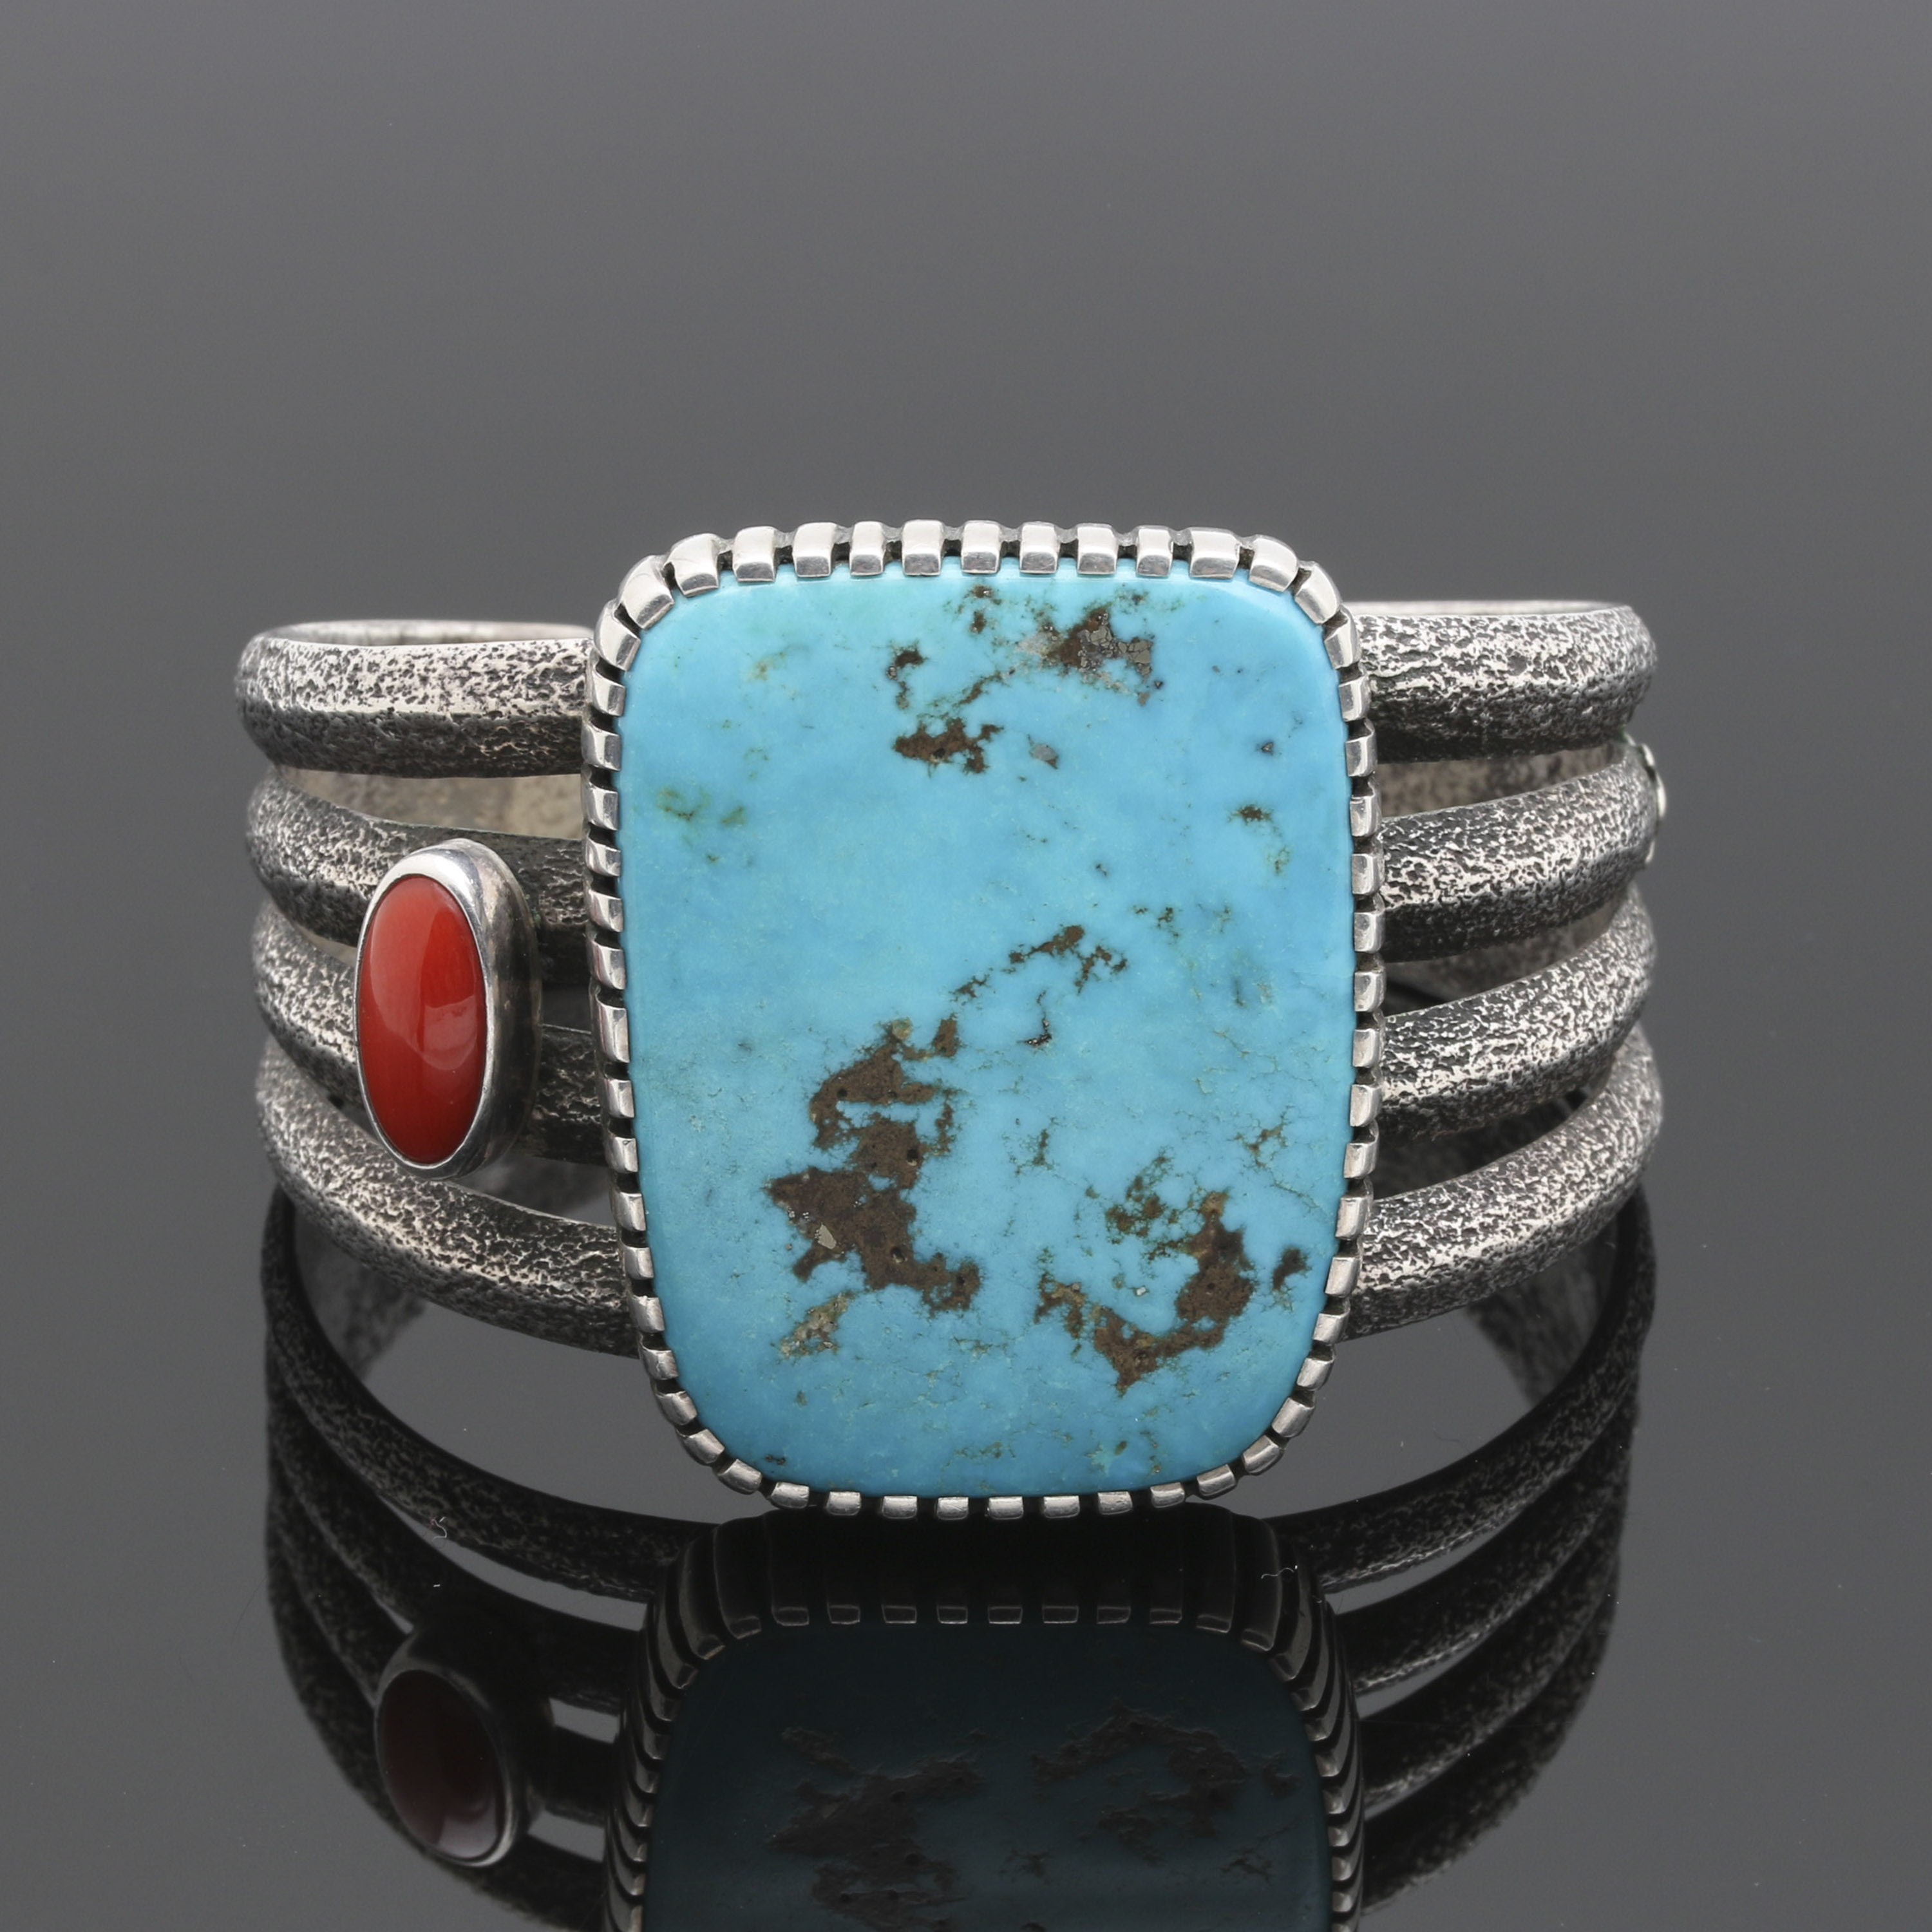 Robert Sorrell Navajo Diné Tufa Cast Cuff with Turquoise and Coral